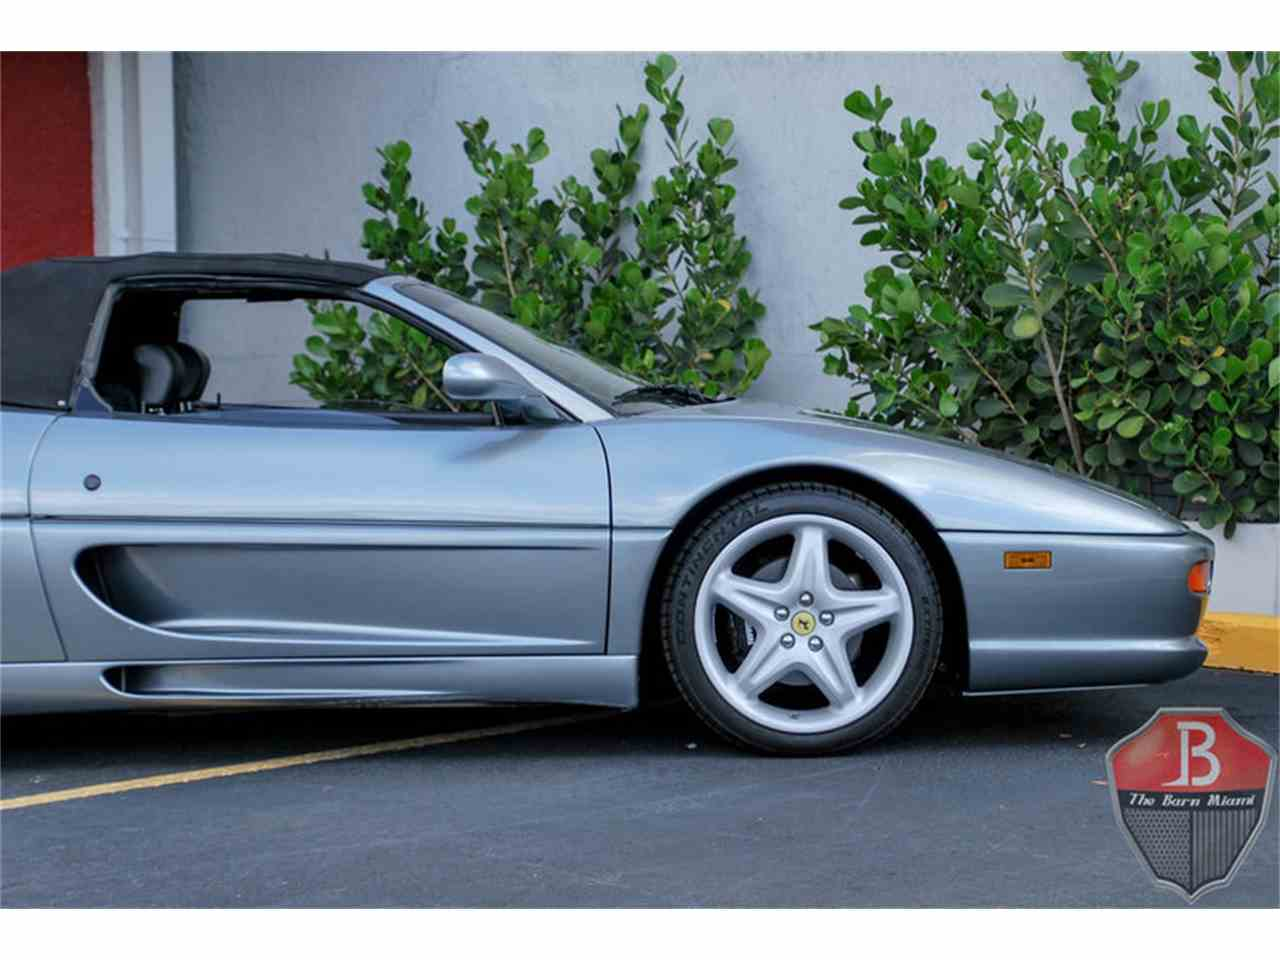 Large Picture of '97 Ferrari 355 - $74,900.00 Offered by The Barn Miami - IZWQ